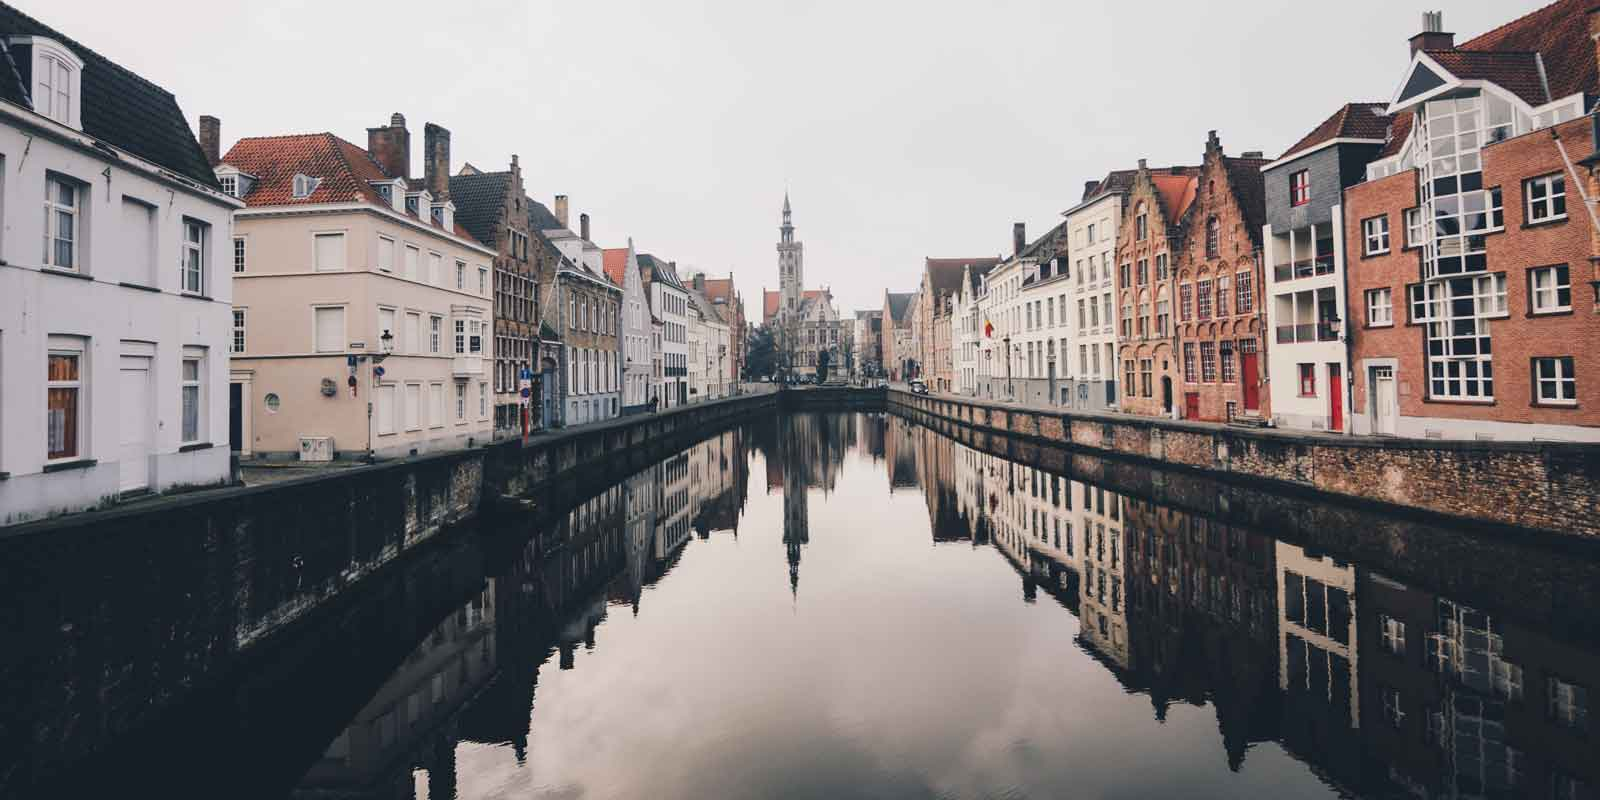 Landscape view of Bruges from the middle of a canal.